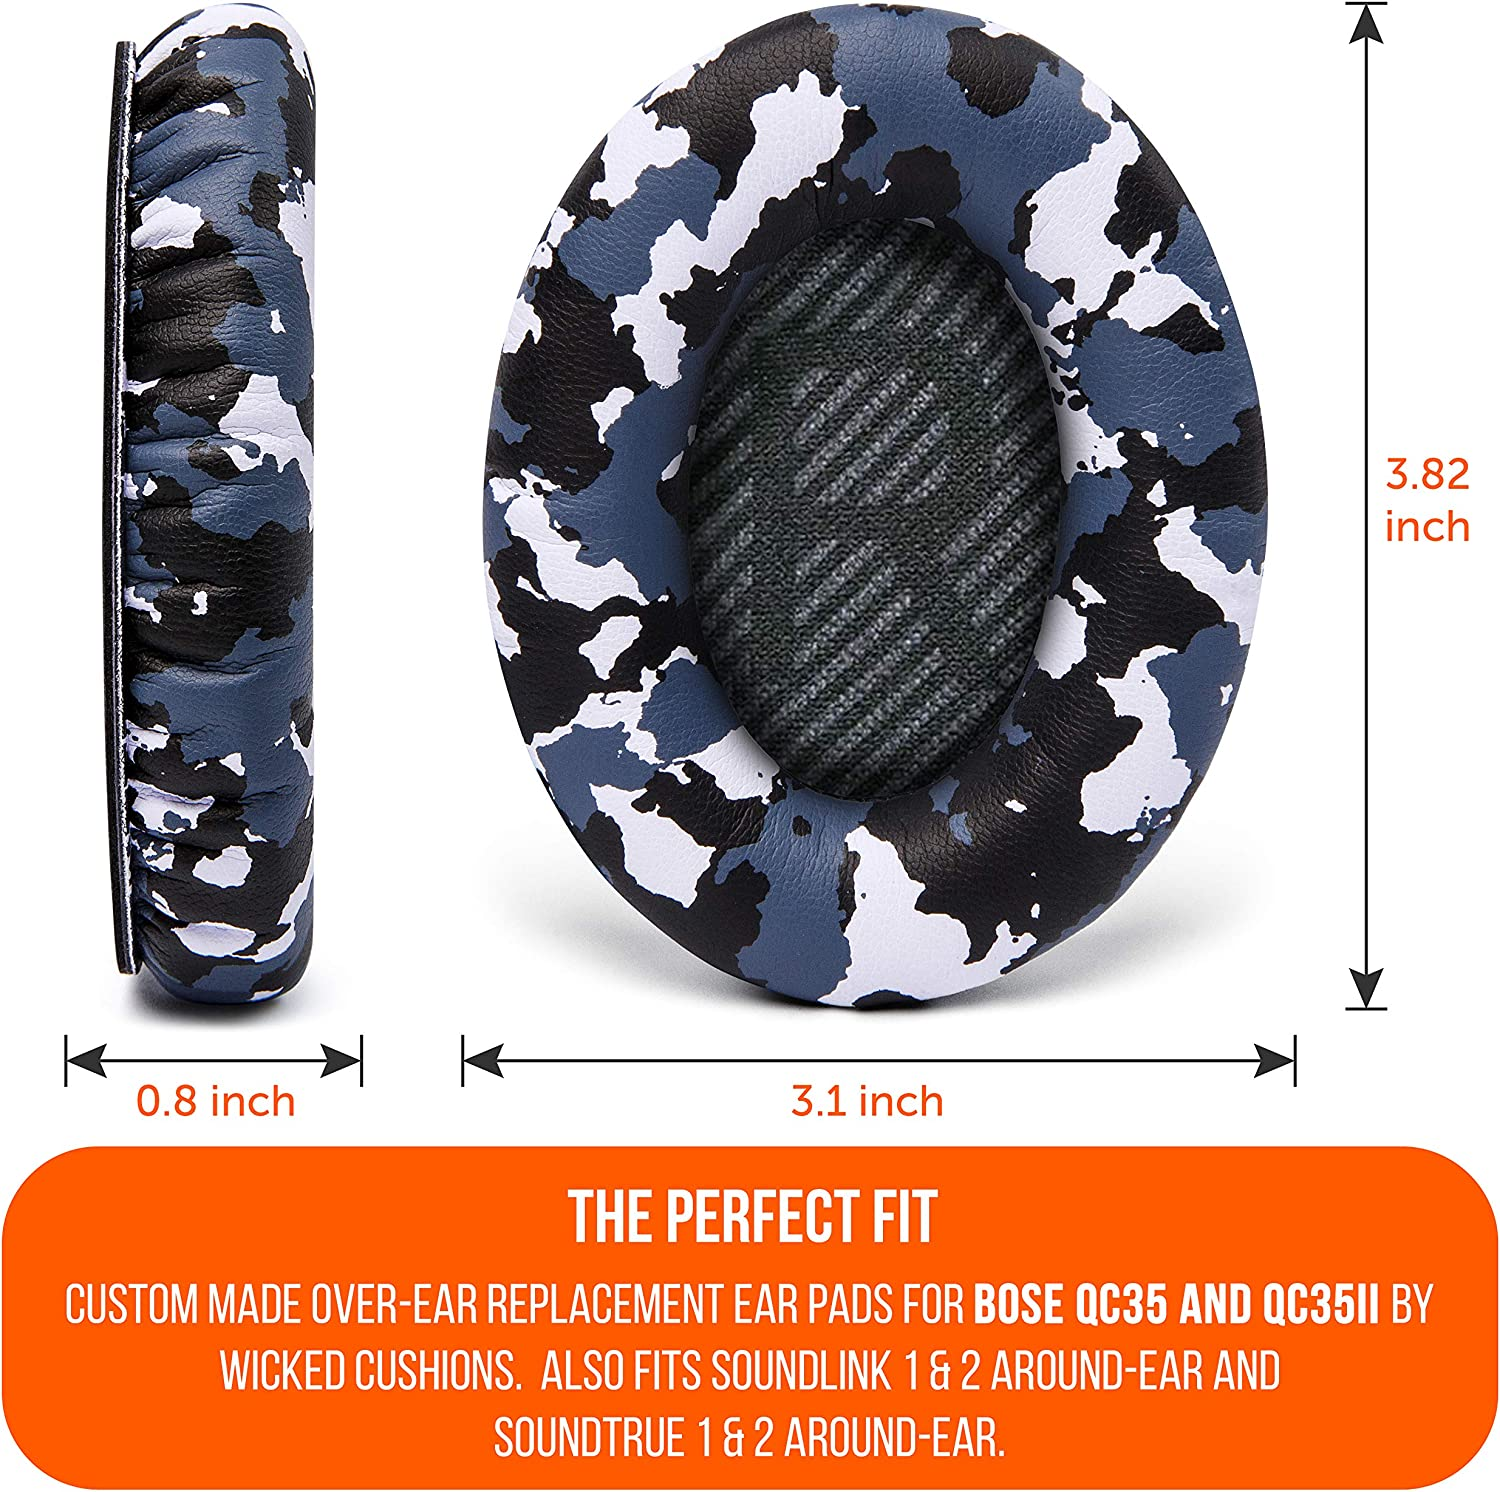 WC Premium Replacement Ear Pads for Bose QC35 /& QC35ii Headphones Made by Wicked Cushions Comfortable Adaptive Memory Foam Extra Durable Fits QuietComfort 35 /& 35ii // SoundLink 1/&2 AE